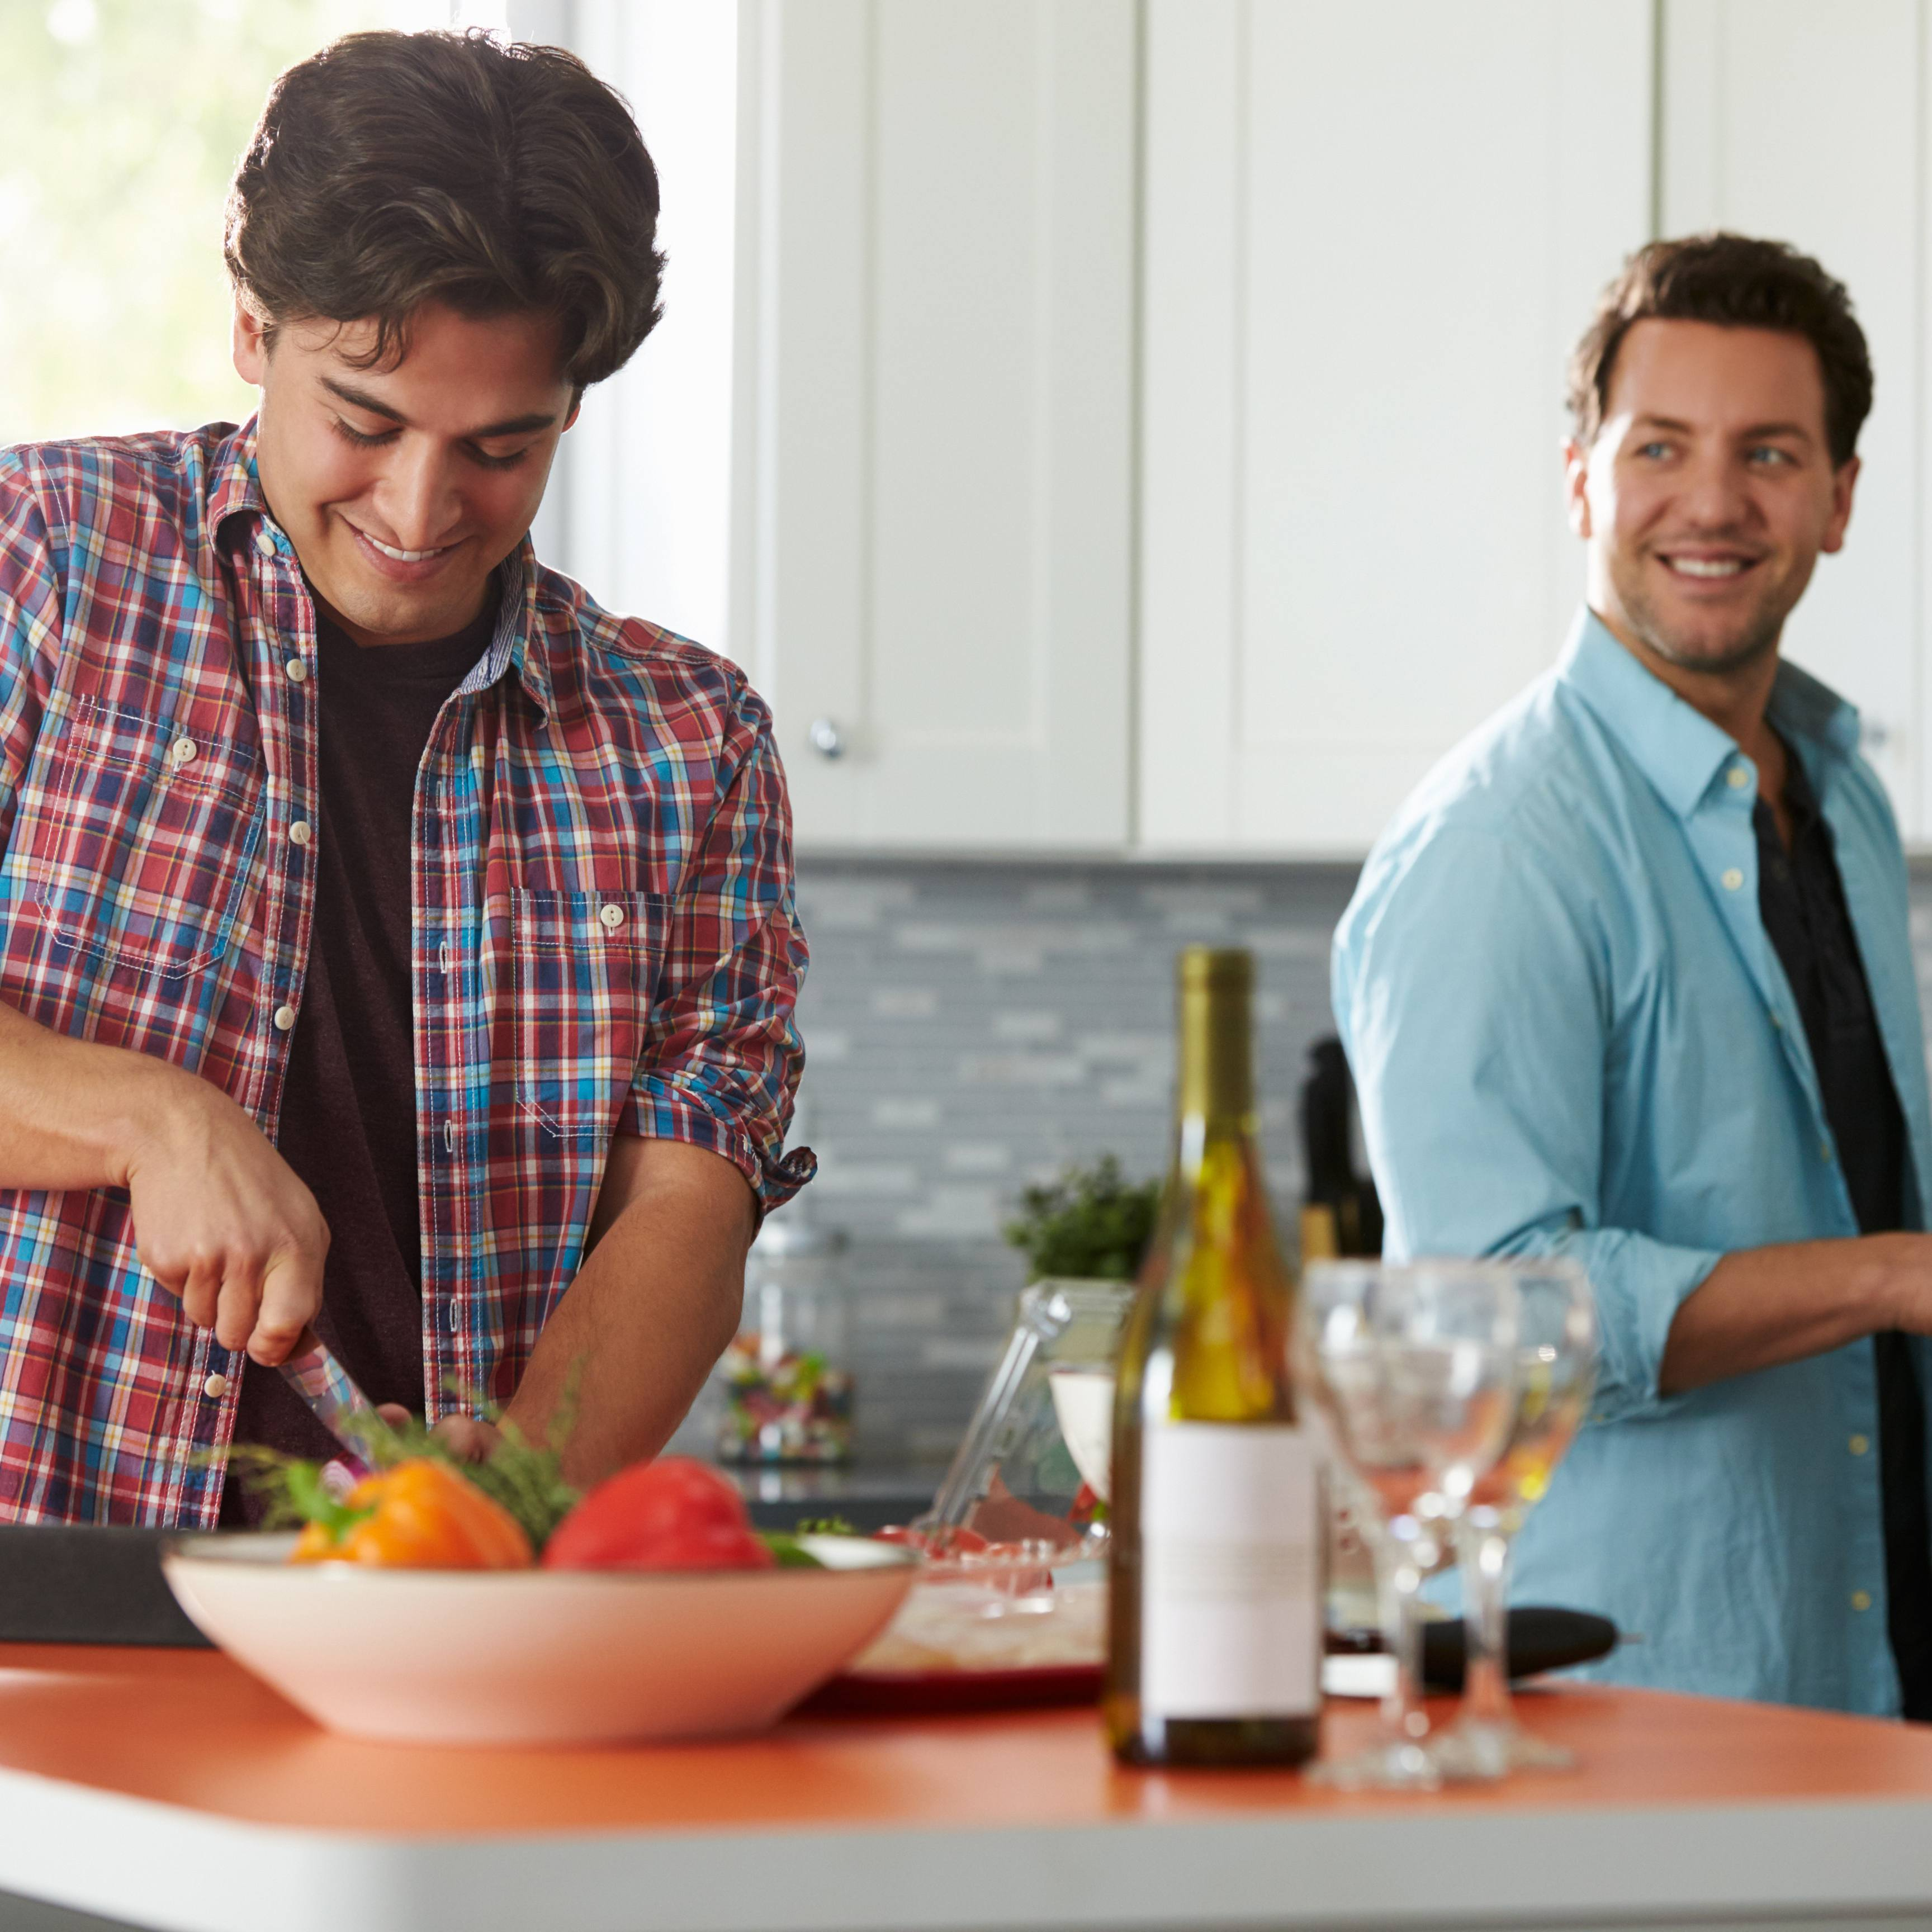 two young men cooking together in their kitchen